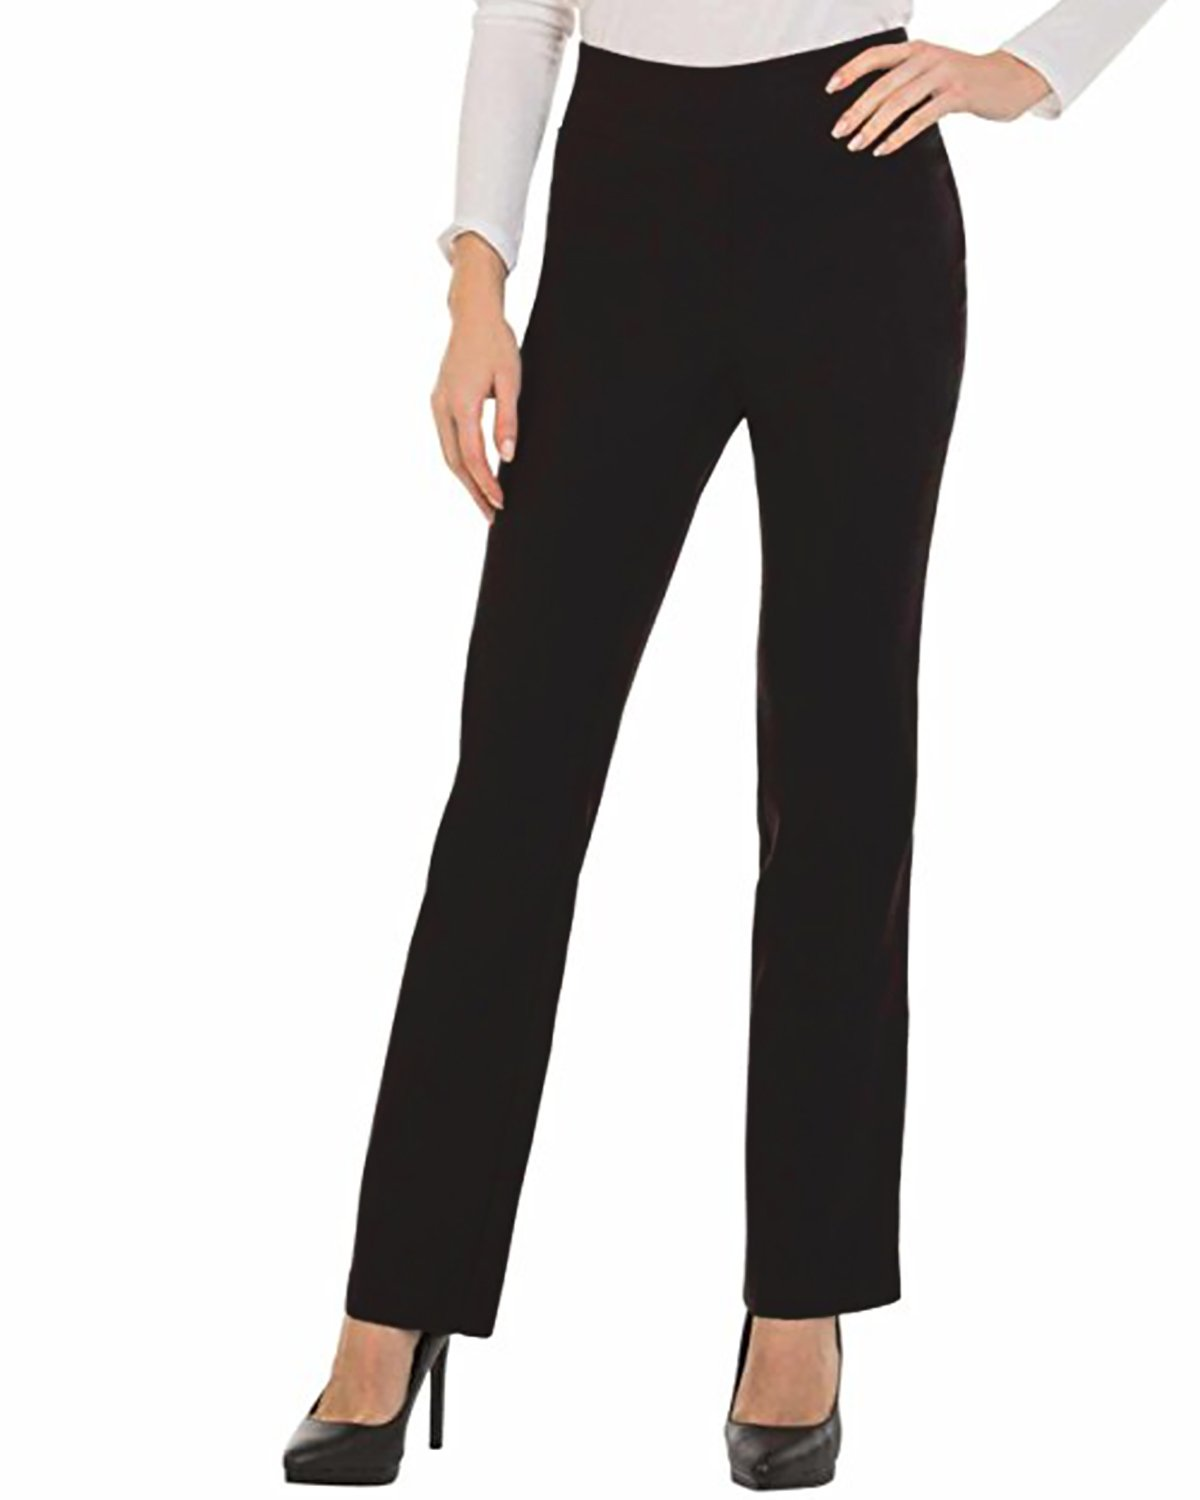 Kidsform Women Dress Pants Boot-Cut Trousers High Waist Straight Leg Slim Fit Causal Office Work Pants